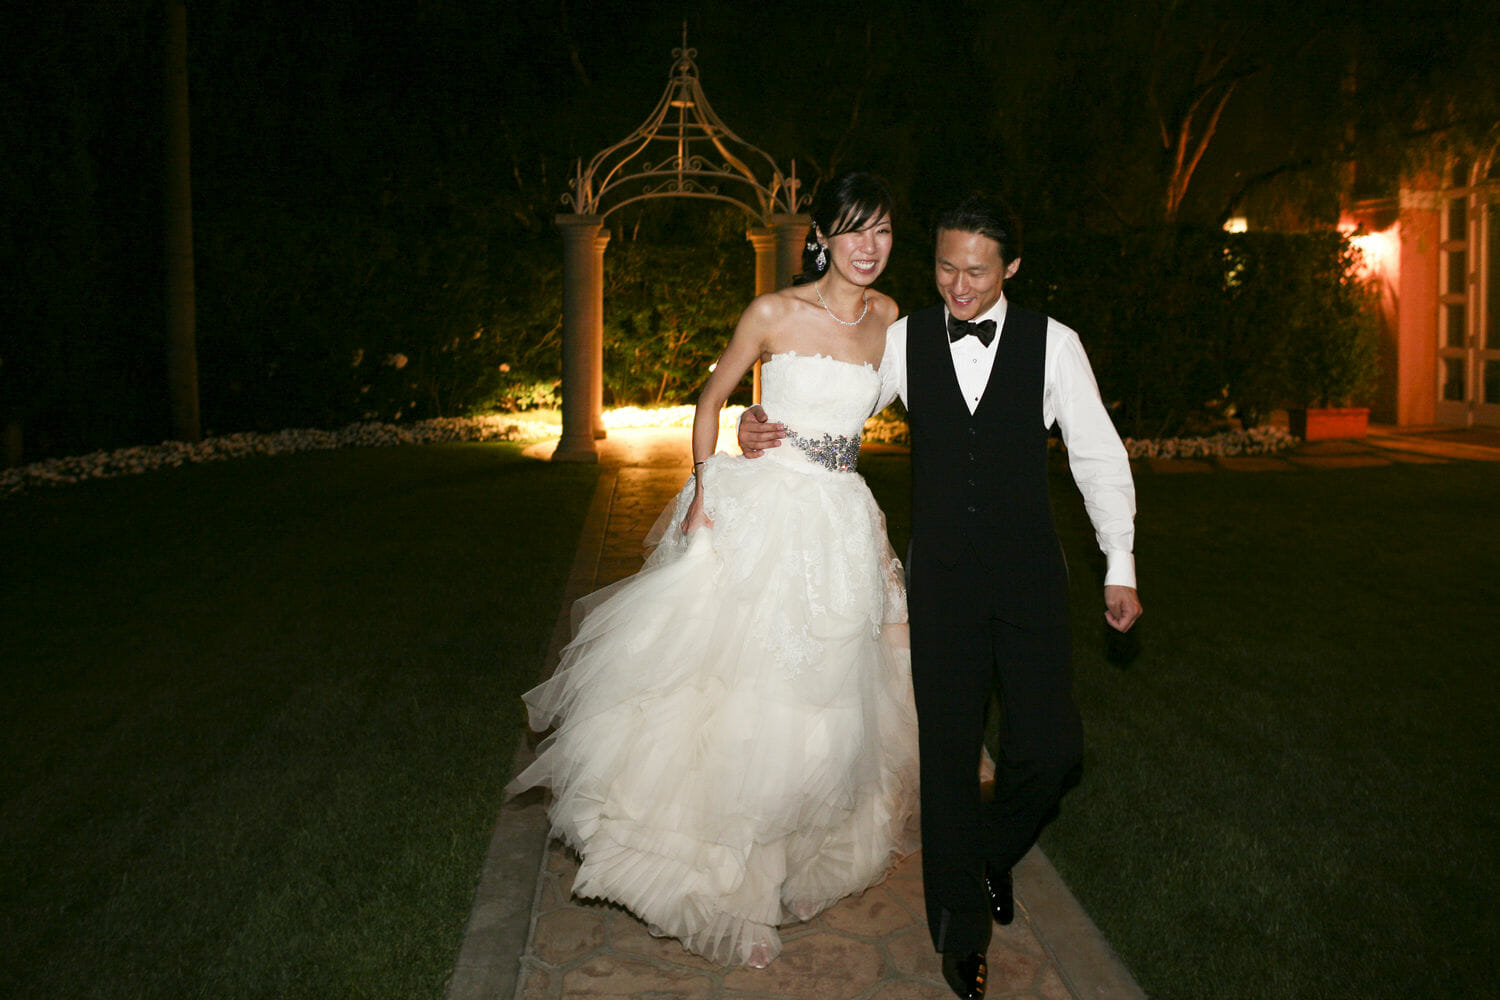 wedding-beverly-hills-hotel-stephanie-gerald-232